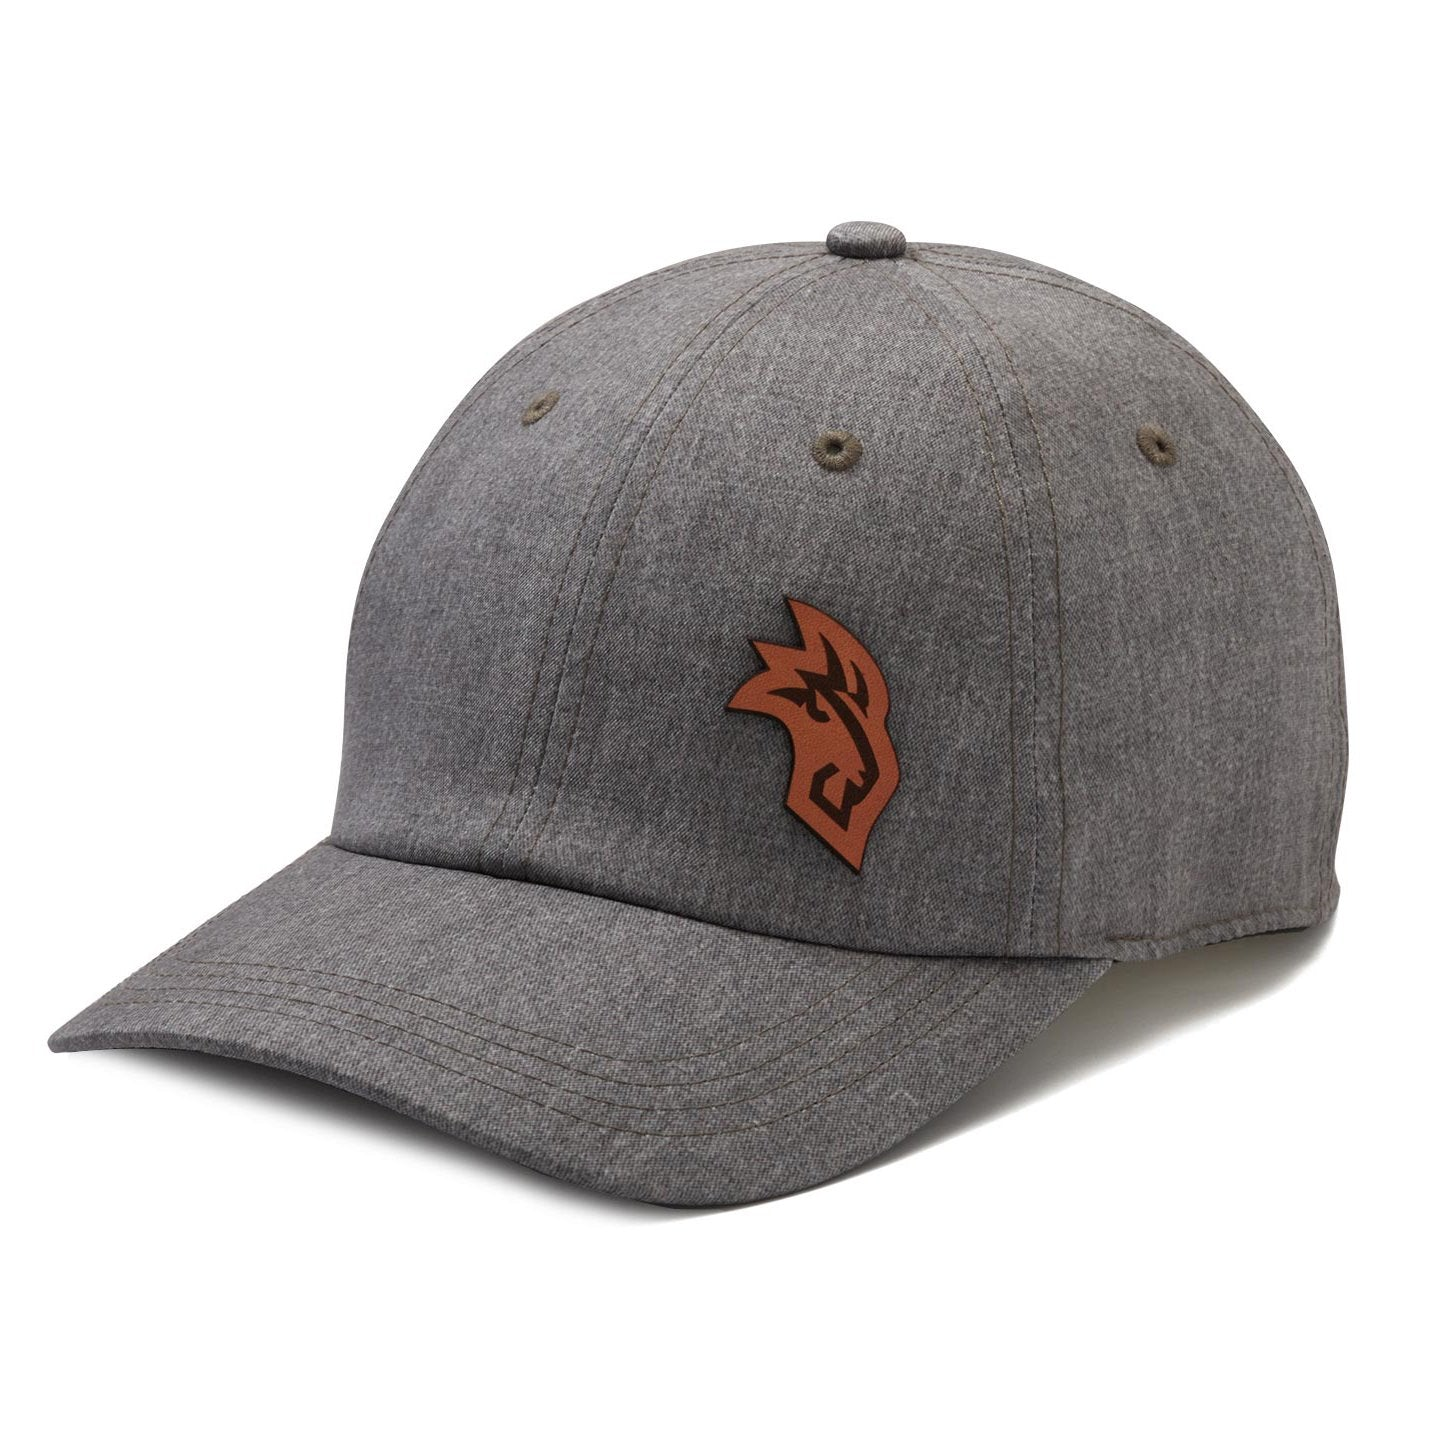 The GOAT Icon Hat